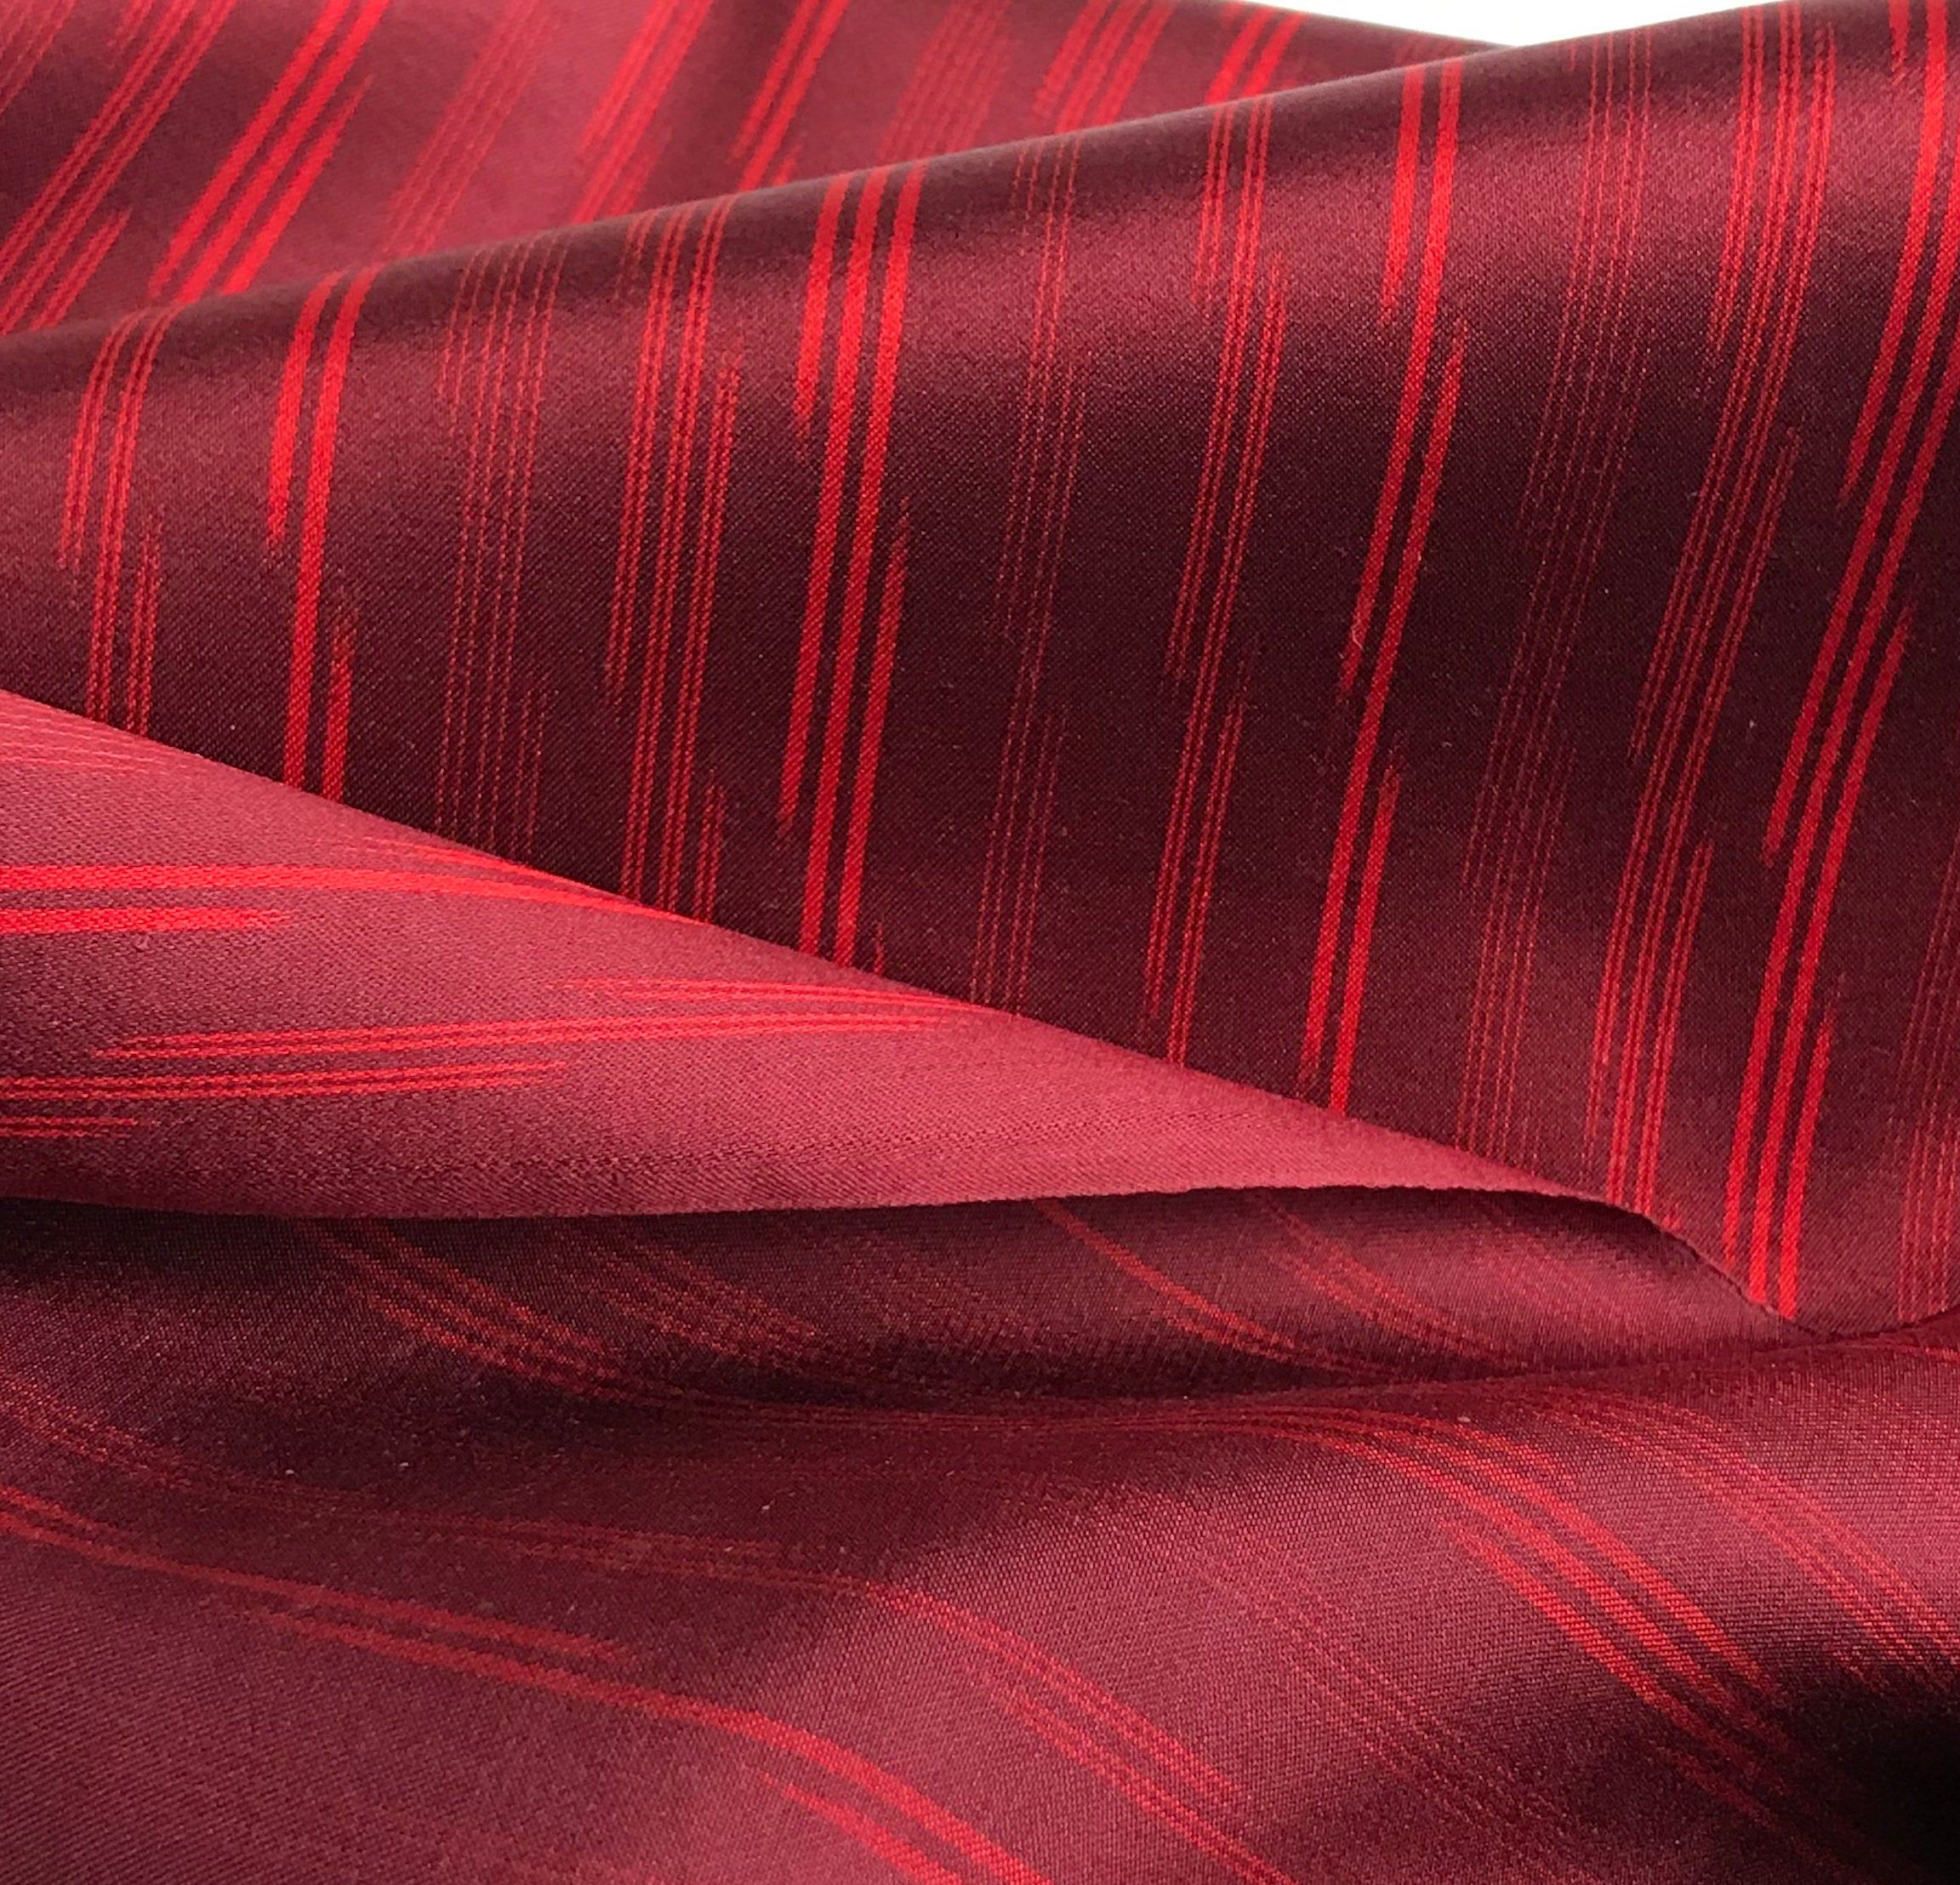 Japanese Silk Fabric By The Yard Striped Red Satin Woven Ikat Etsy Japanese Silk Japanese Fabric Red Satin